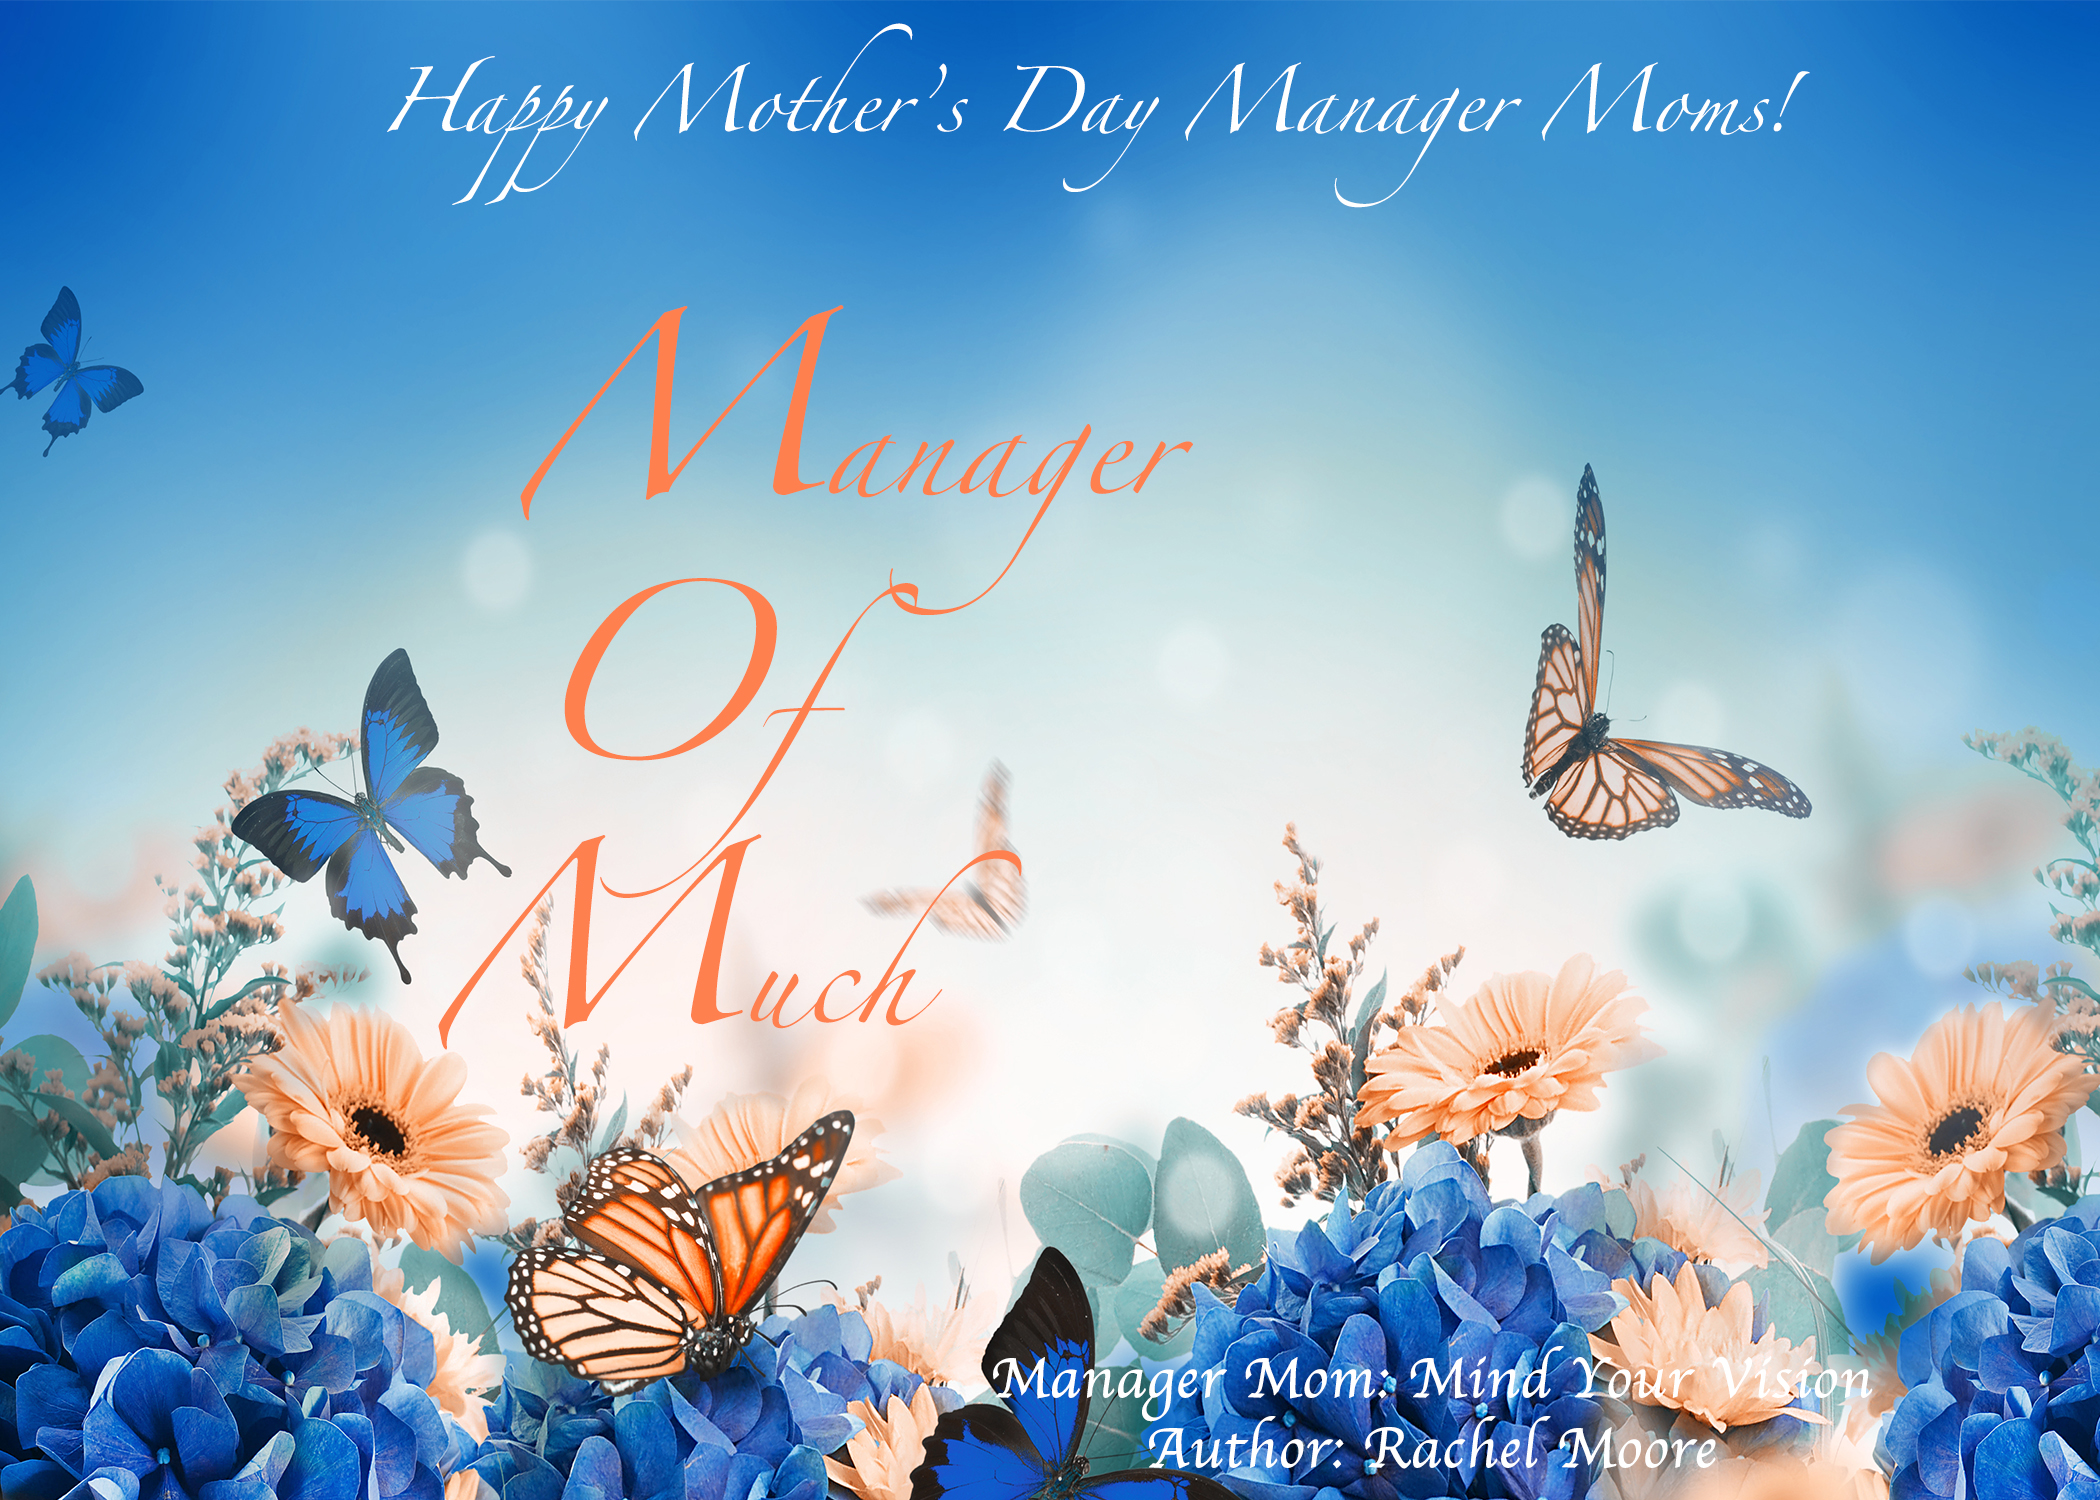 MOM: Manager of Much